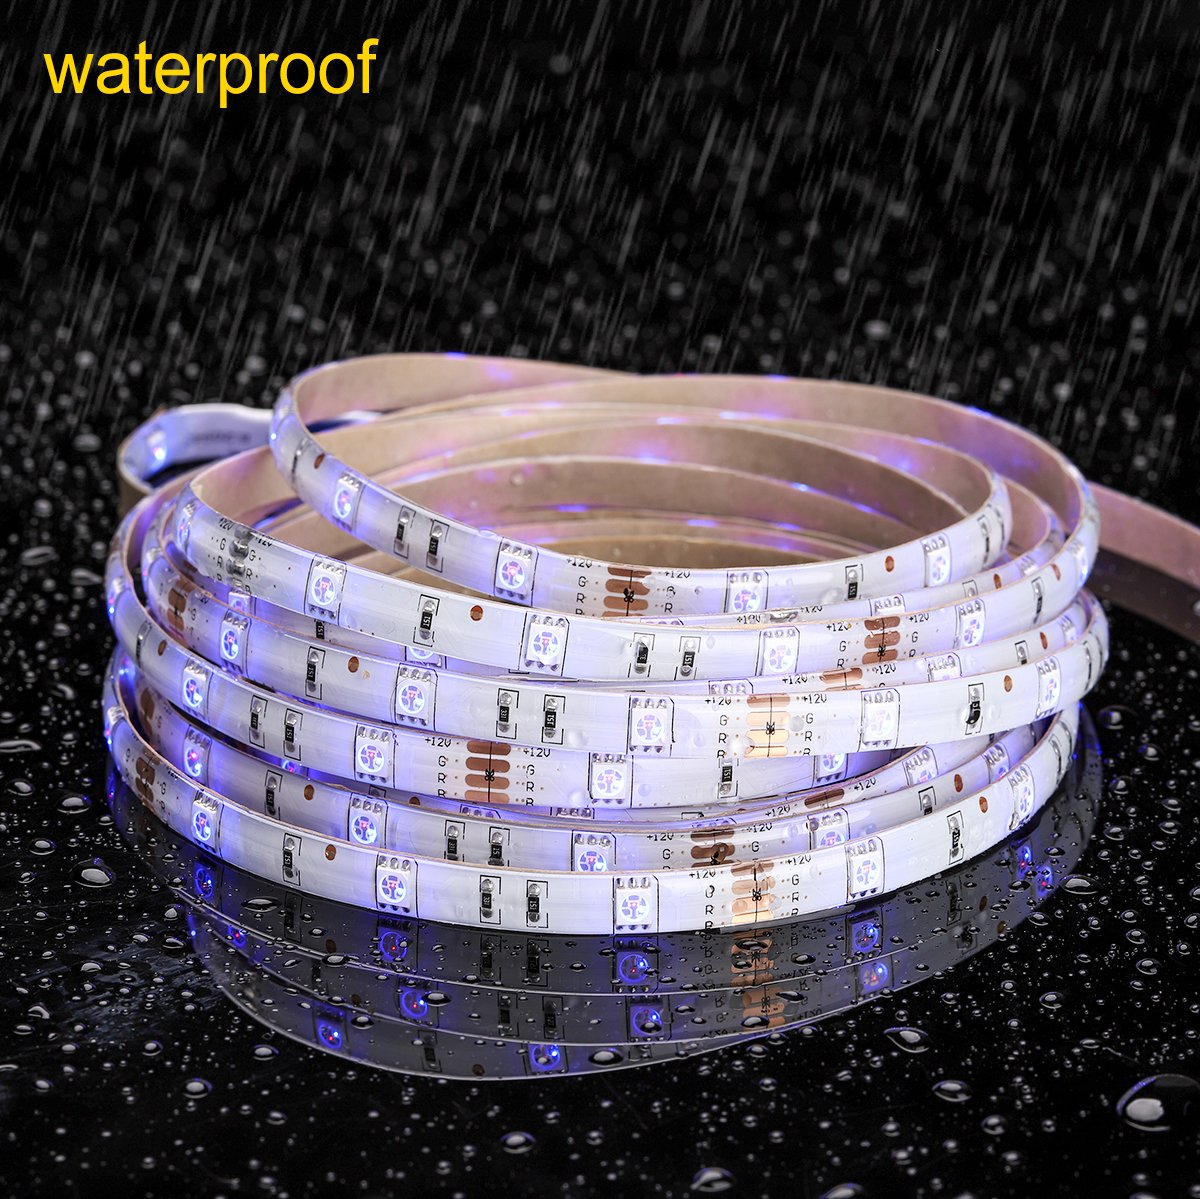 MINGER LED Strip Light Waterproof 16.4ft RGB SMD 5050 LED Rope Lighting Color Changing Full Kit with 44-keys IR Remote Controller & Power Supply Led Strip Lights for Home Kitchen Bed Room Decoration by MINGER (Image #3)